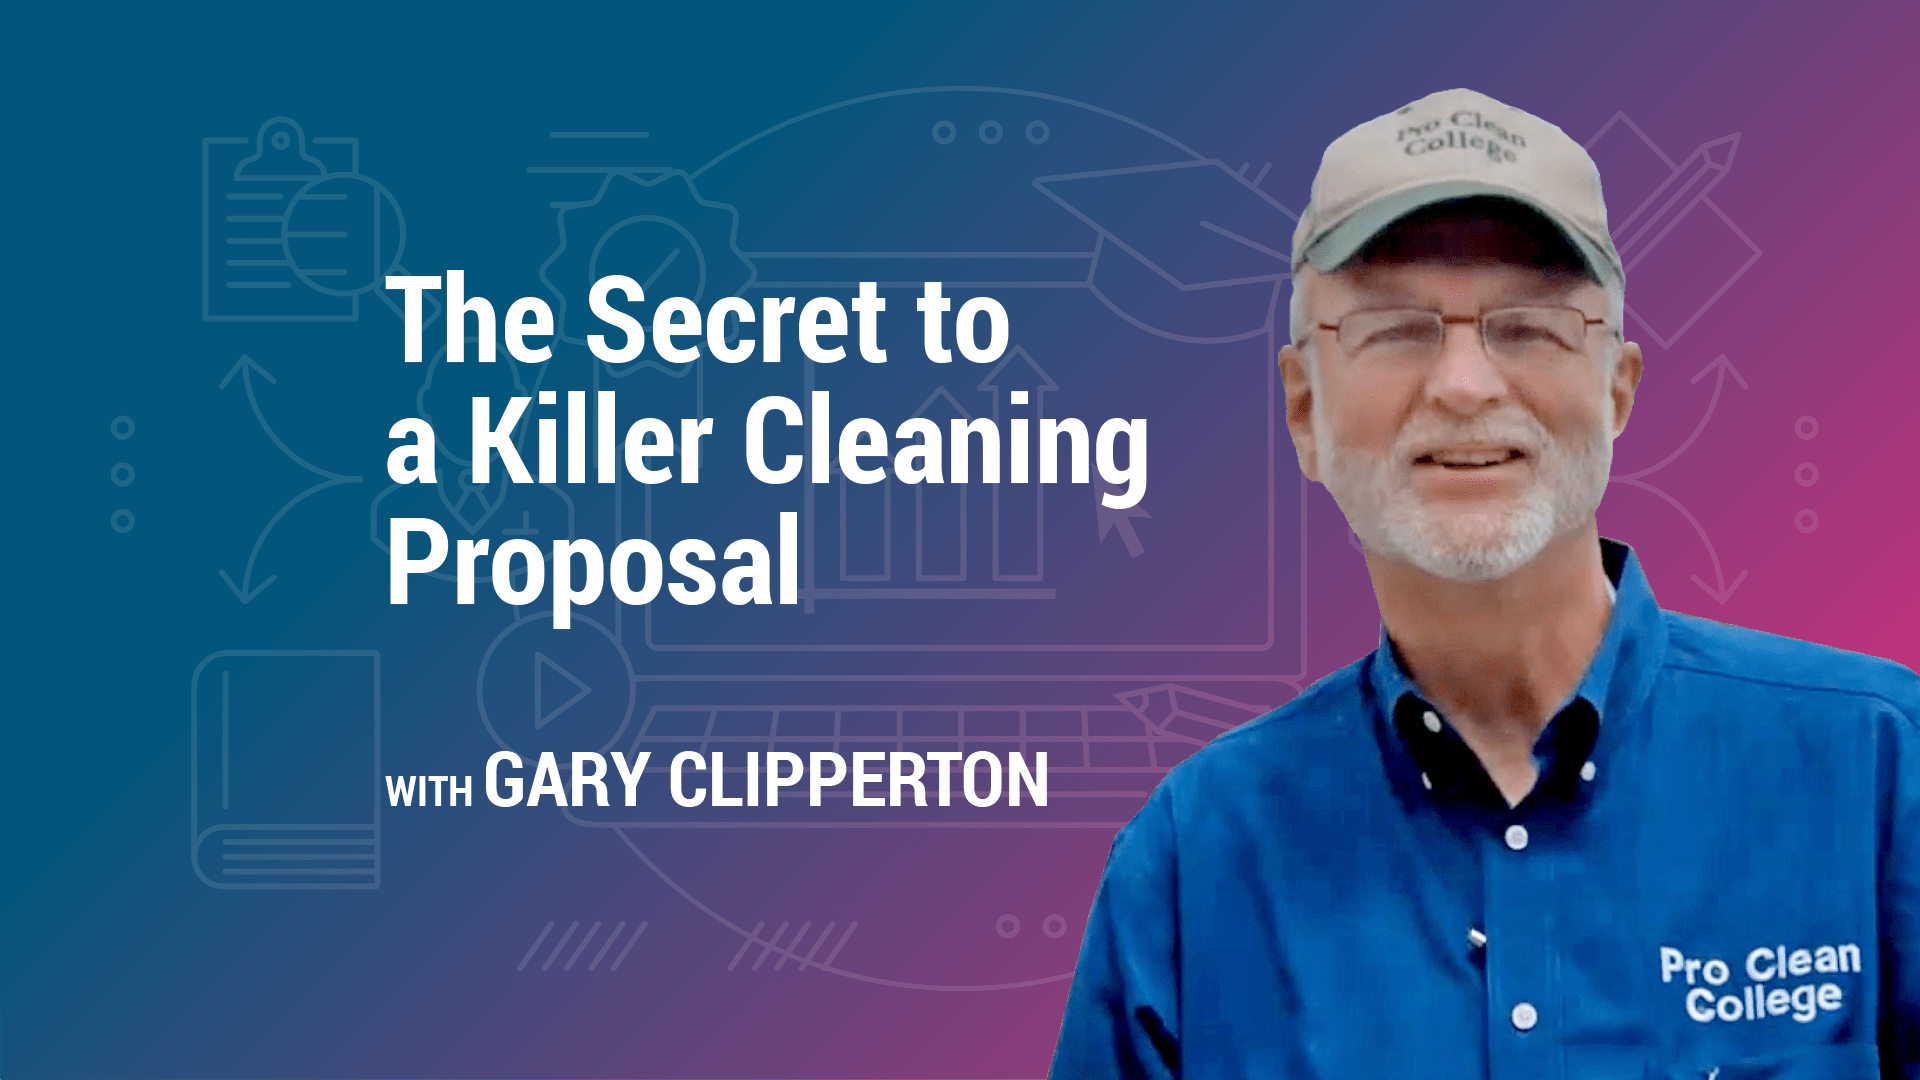 The Secret to a Killer Cleaning Proposal